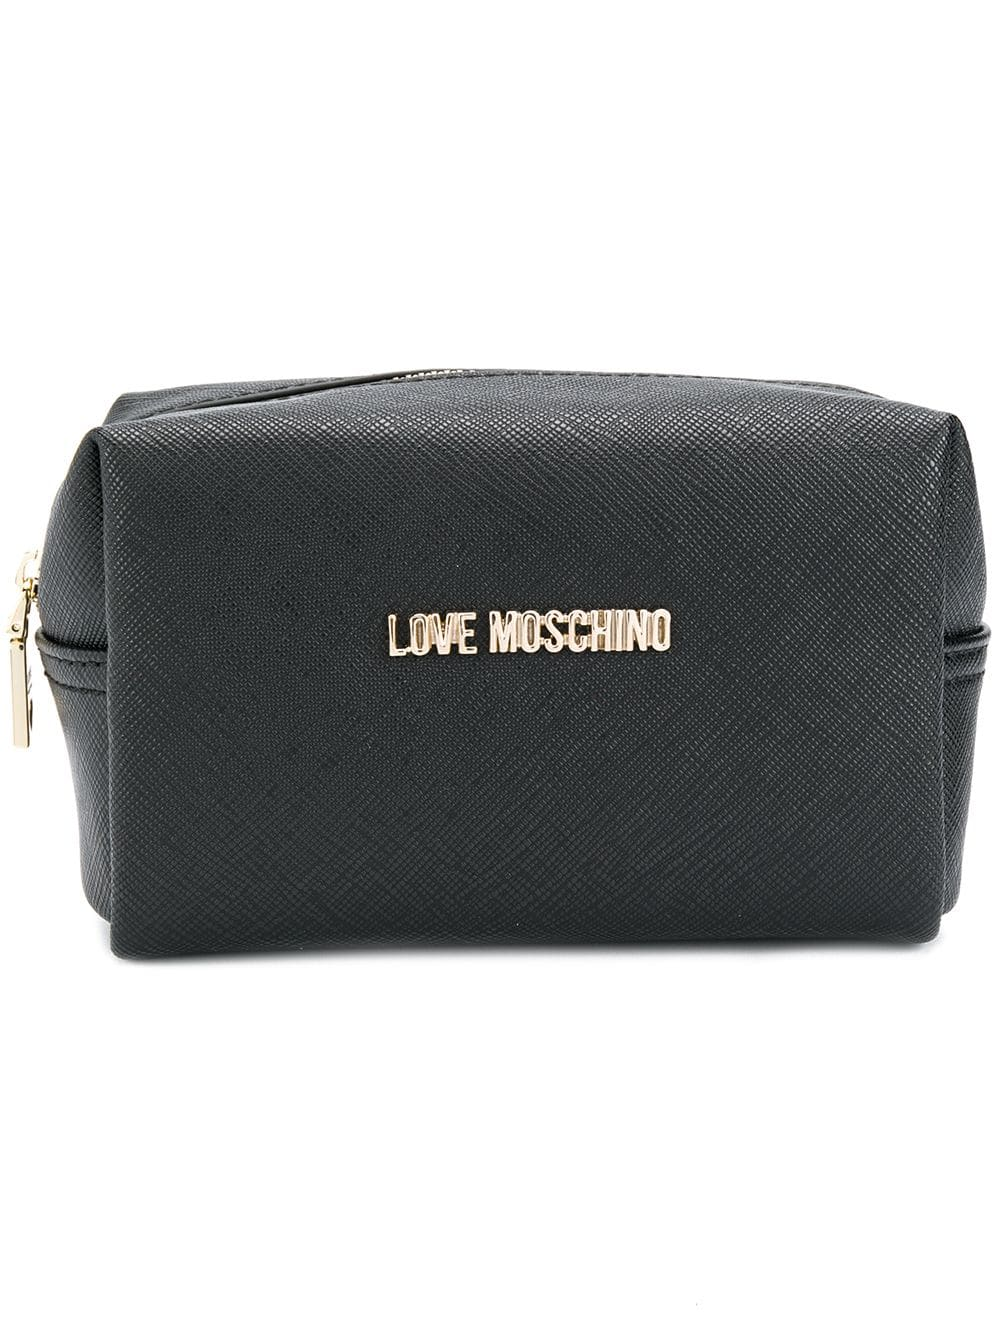 2ec1d79f0b Love Moschino saffiano wash bag - Black   Products in 2019   Bags ...